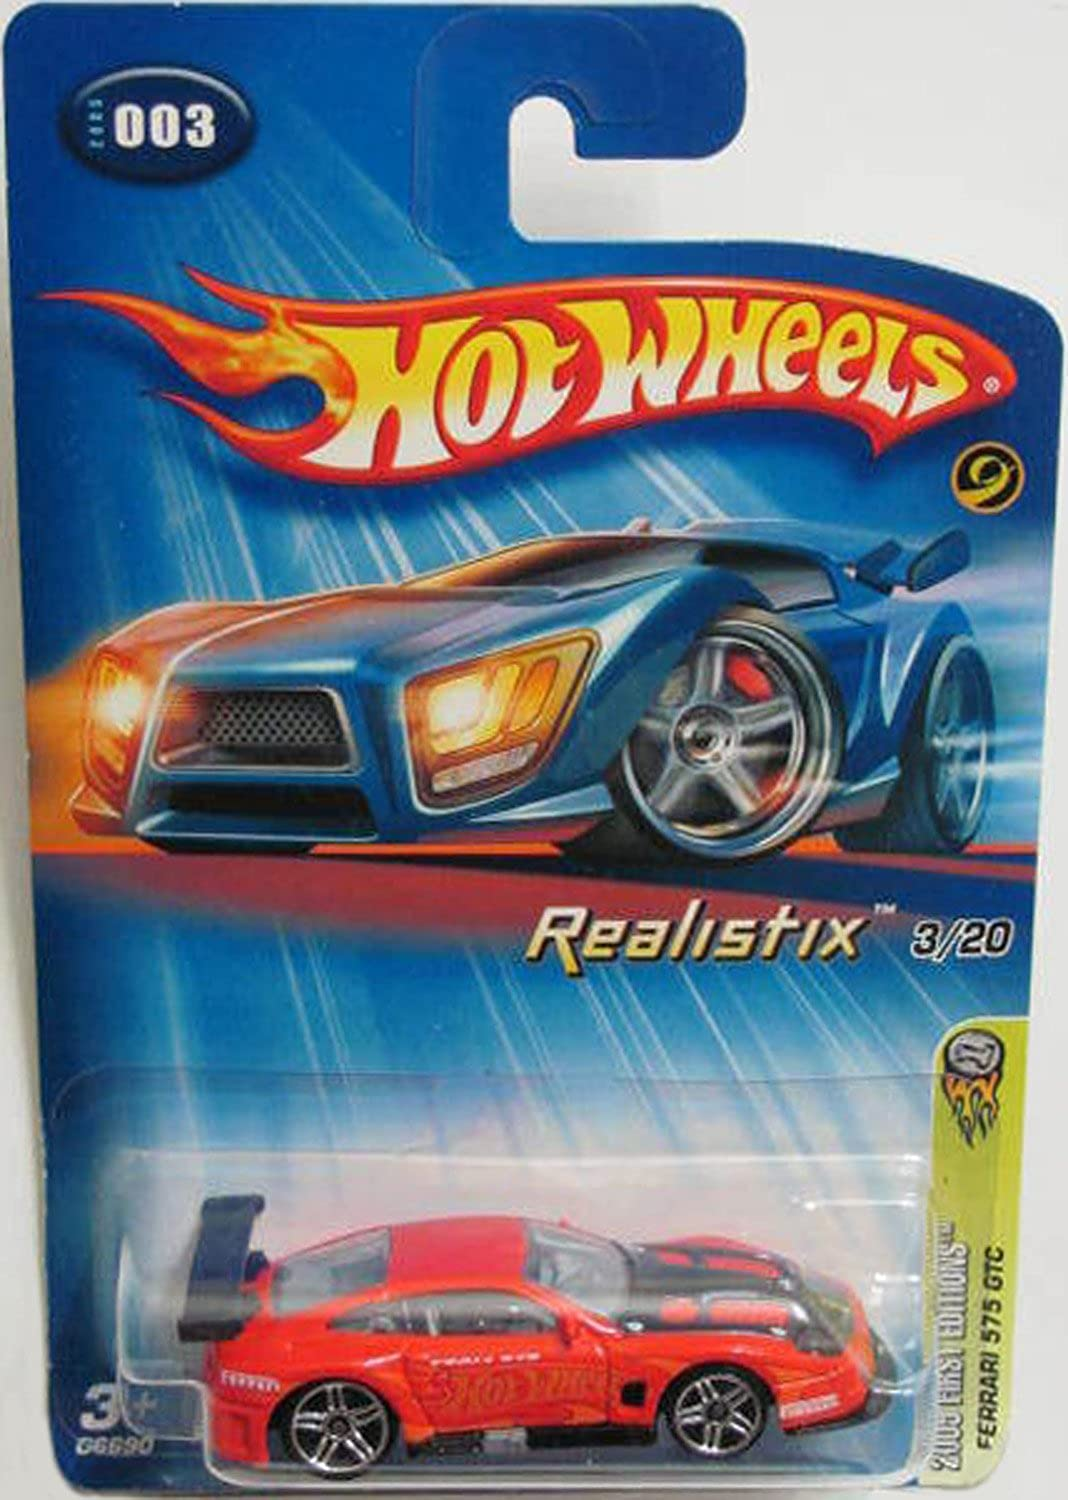 2005 Ferrari 575 GTC Hot Wheels Collectible - Realistix Series - 3